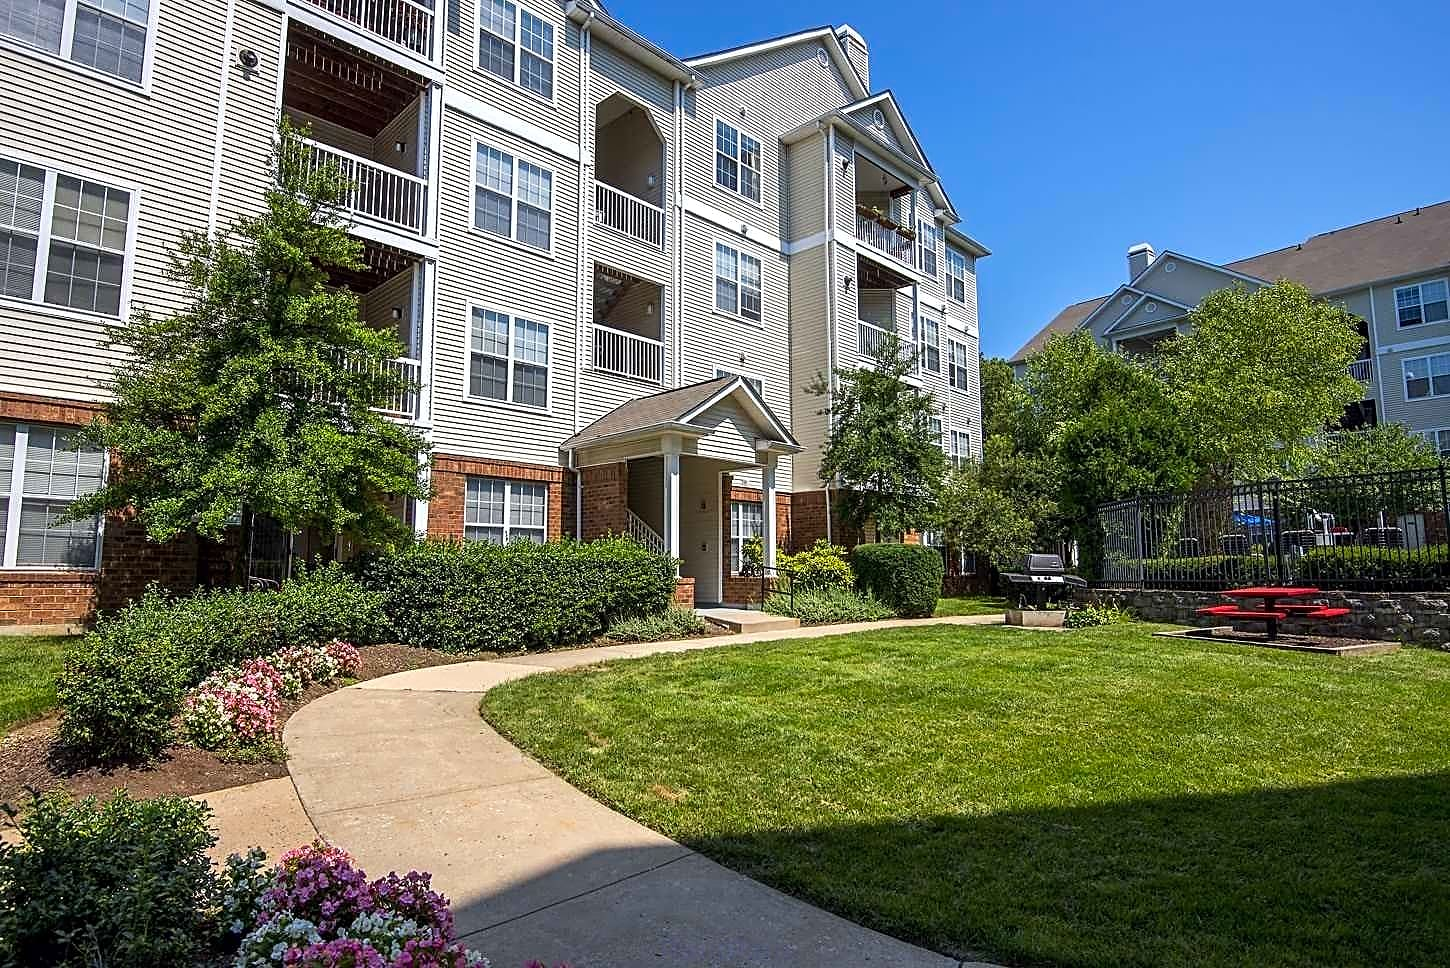 The morgan apartments rockville md 20852 for Academie de cuisine bethesda md